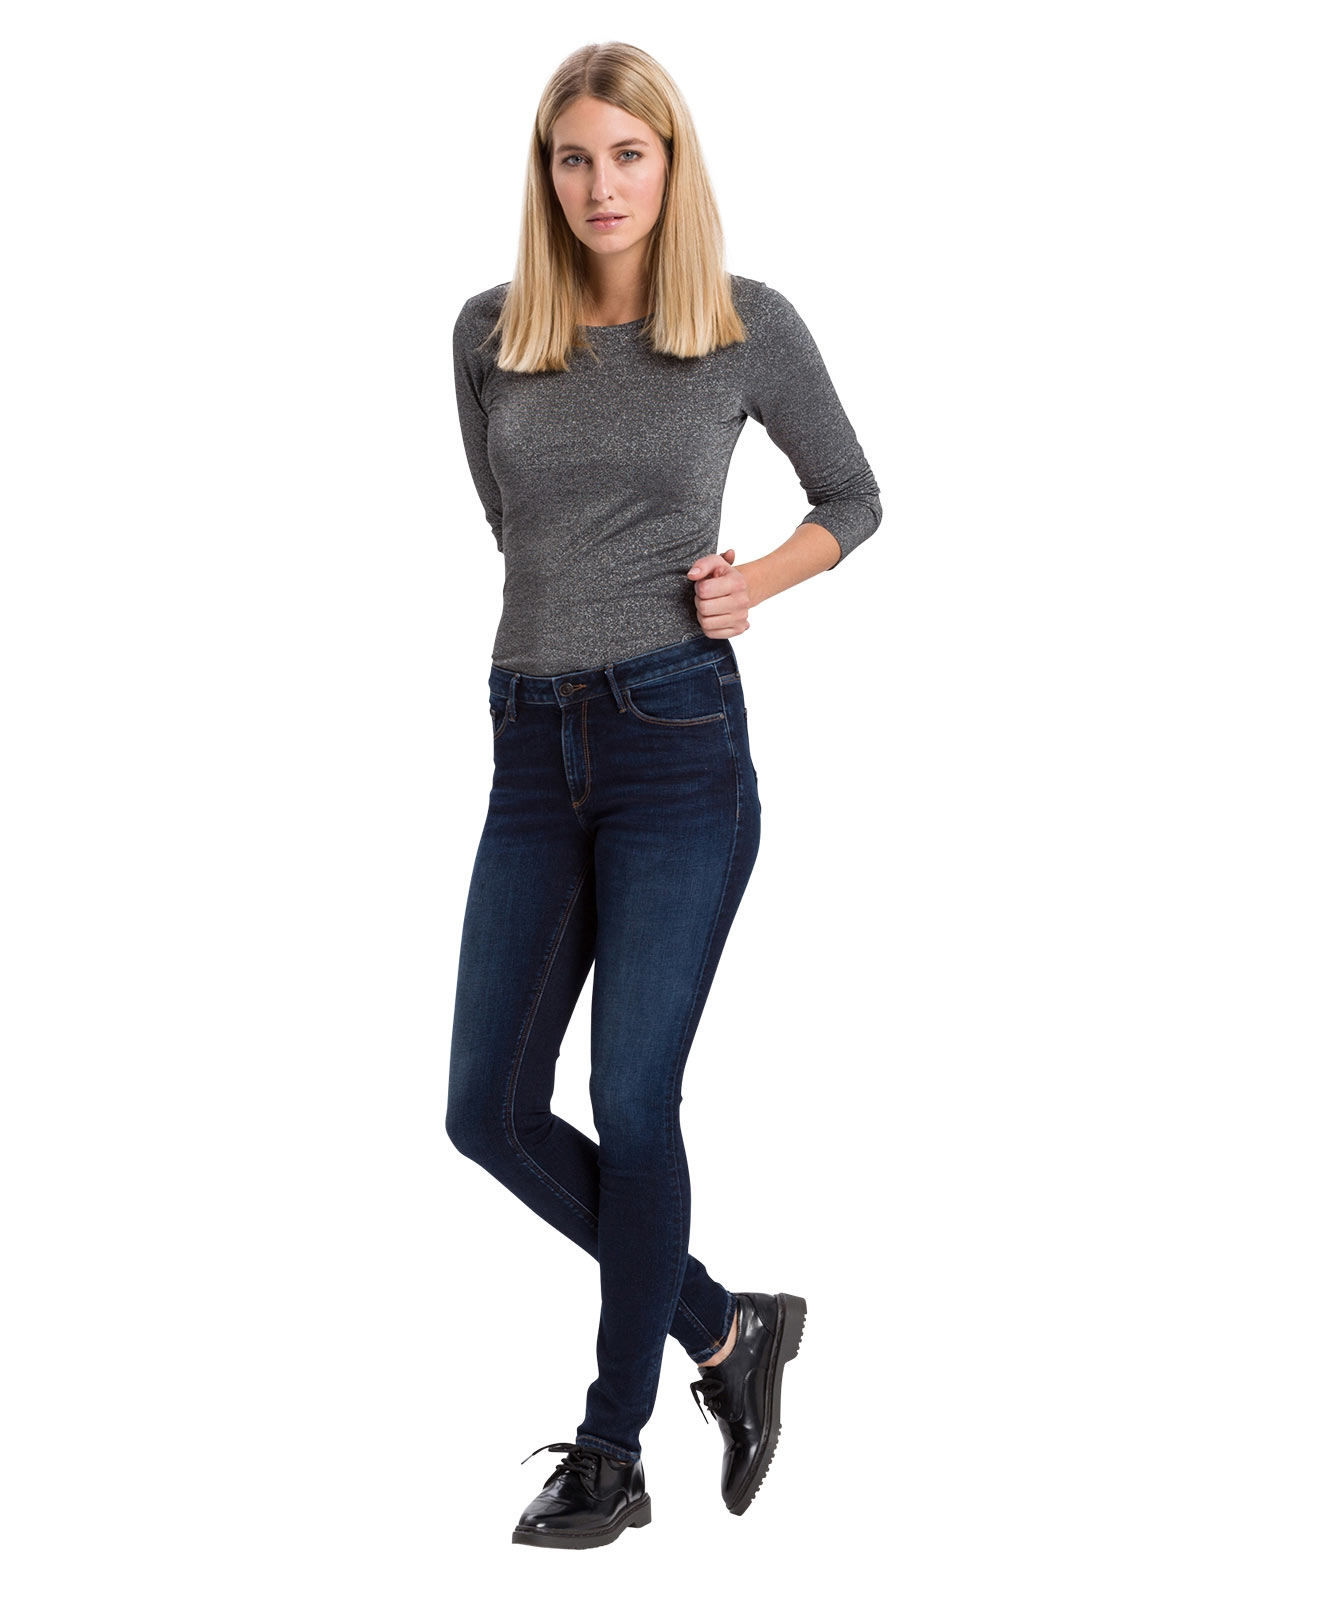 Hosen - Cross High Waisted Jeans Alan in Deep Blue Used  - Onlineshop Jeans Meile